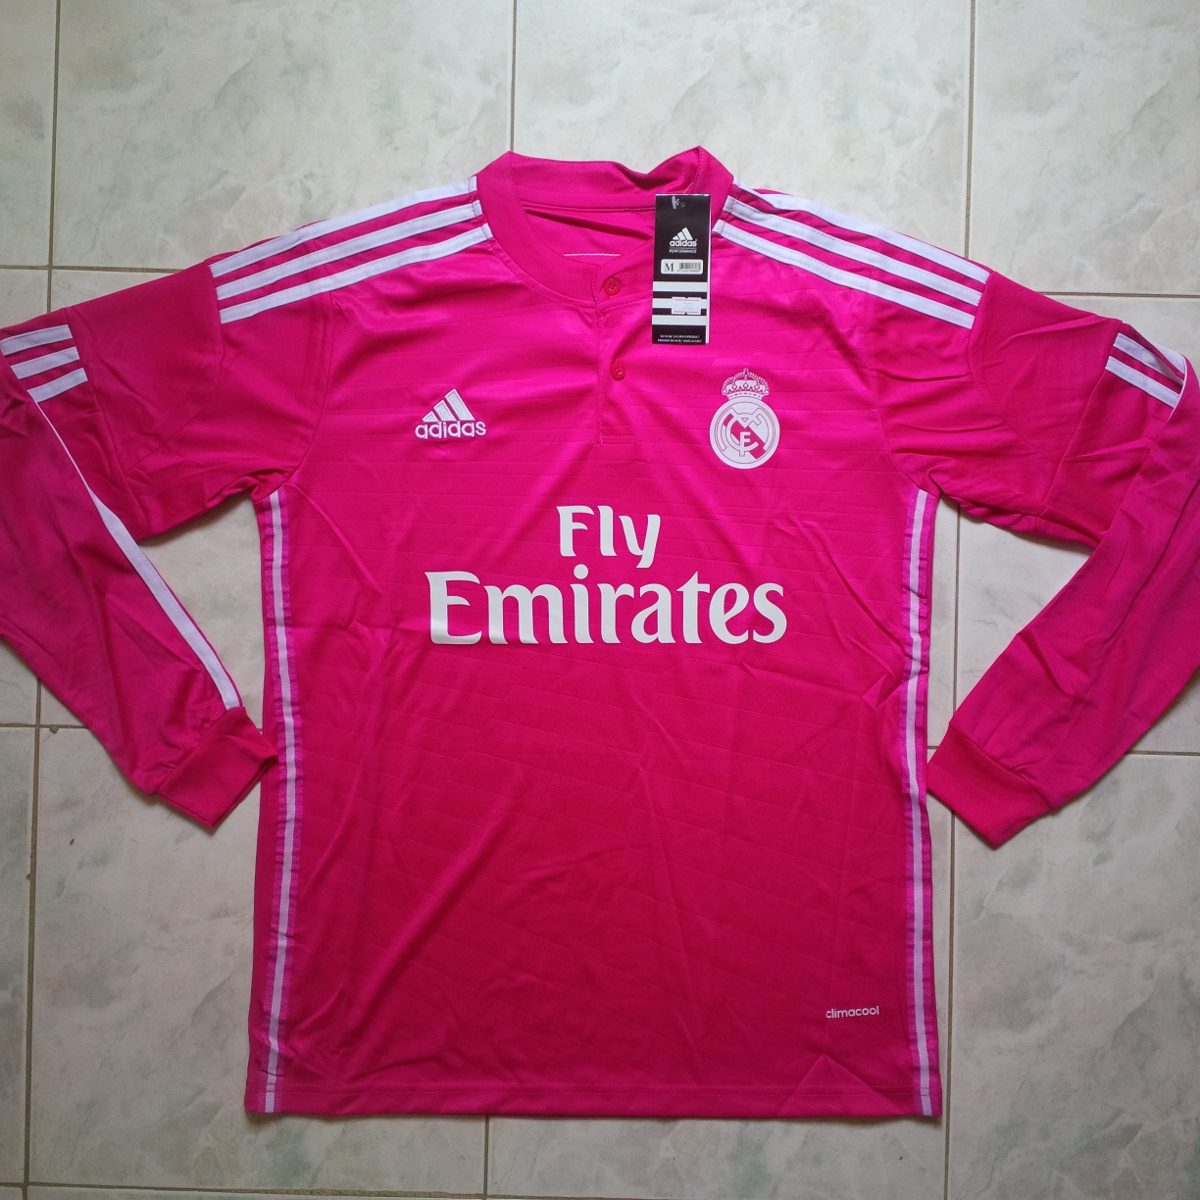 df40bb4967ddd Camiseta Manga Larga Real Madrid Fuscia 2015 Adultos - Bs. 0